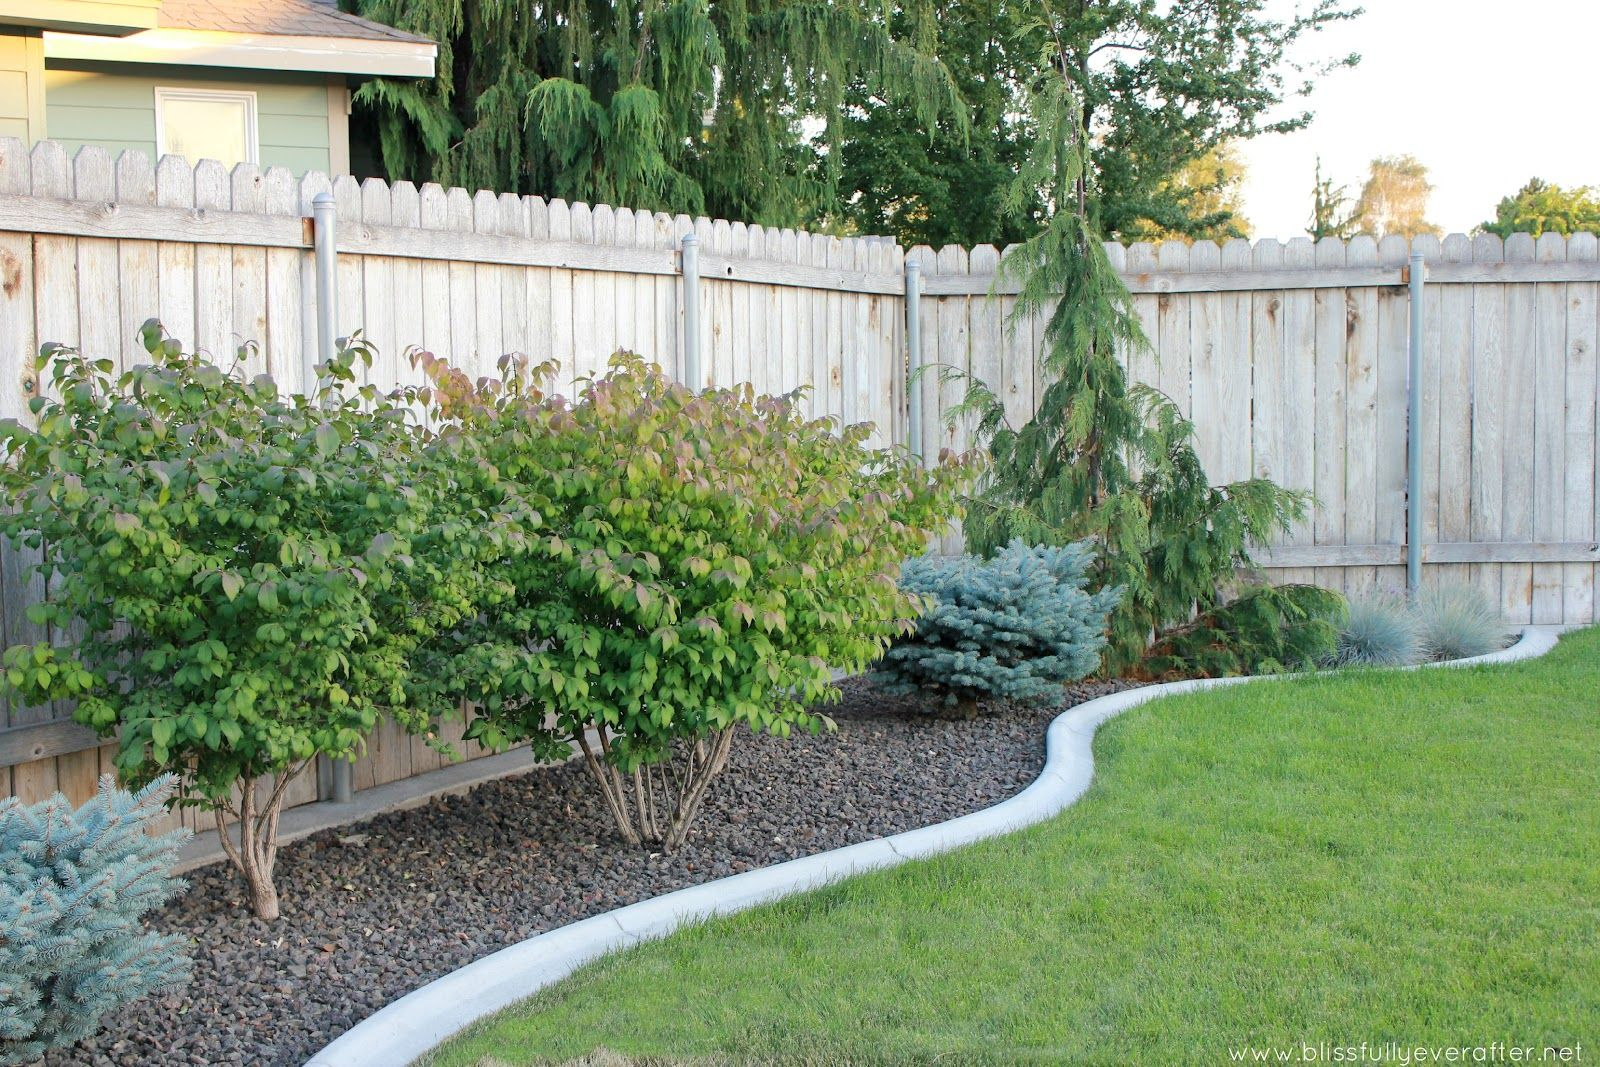 Cheap Landscaping Ideas For Back Yard Blissfully Ever After Patio within 14 Awesome Concepts of How to Build Ideas For Backyard Landscaping On A Budget